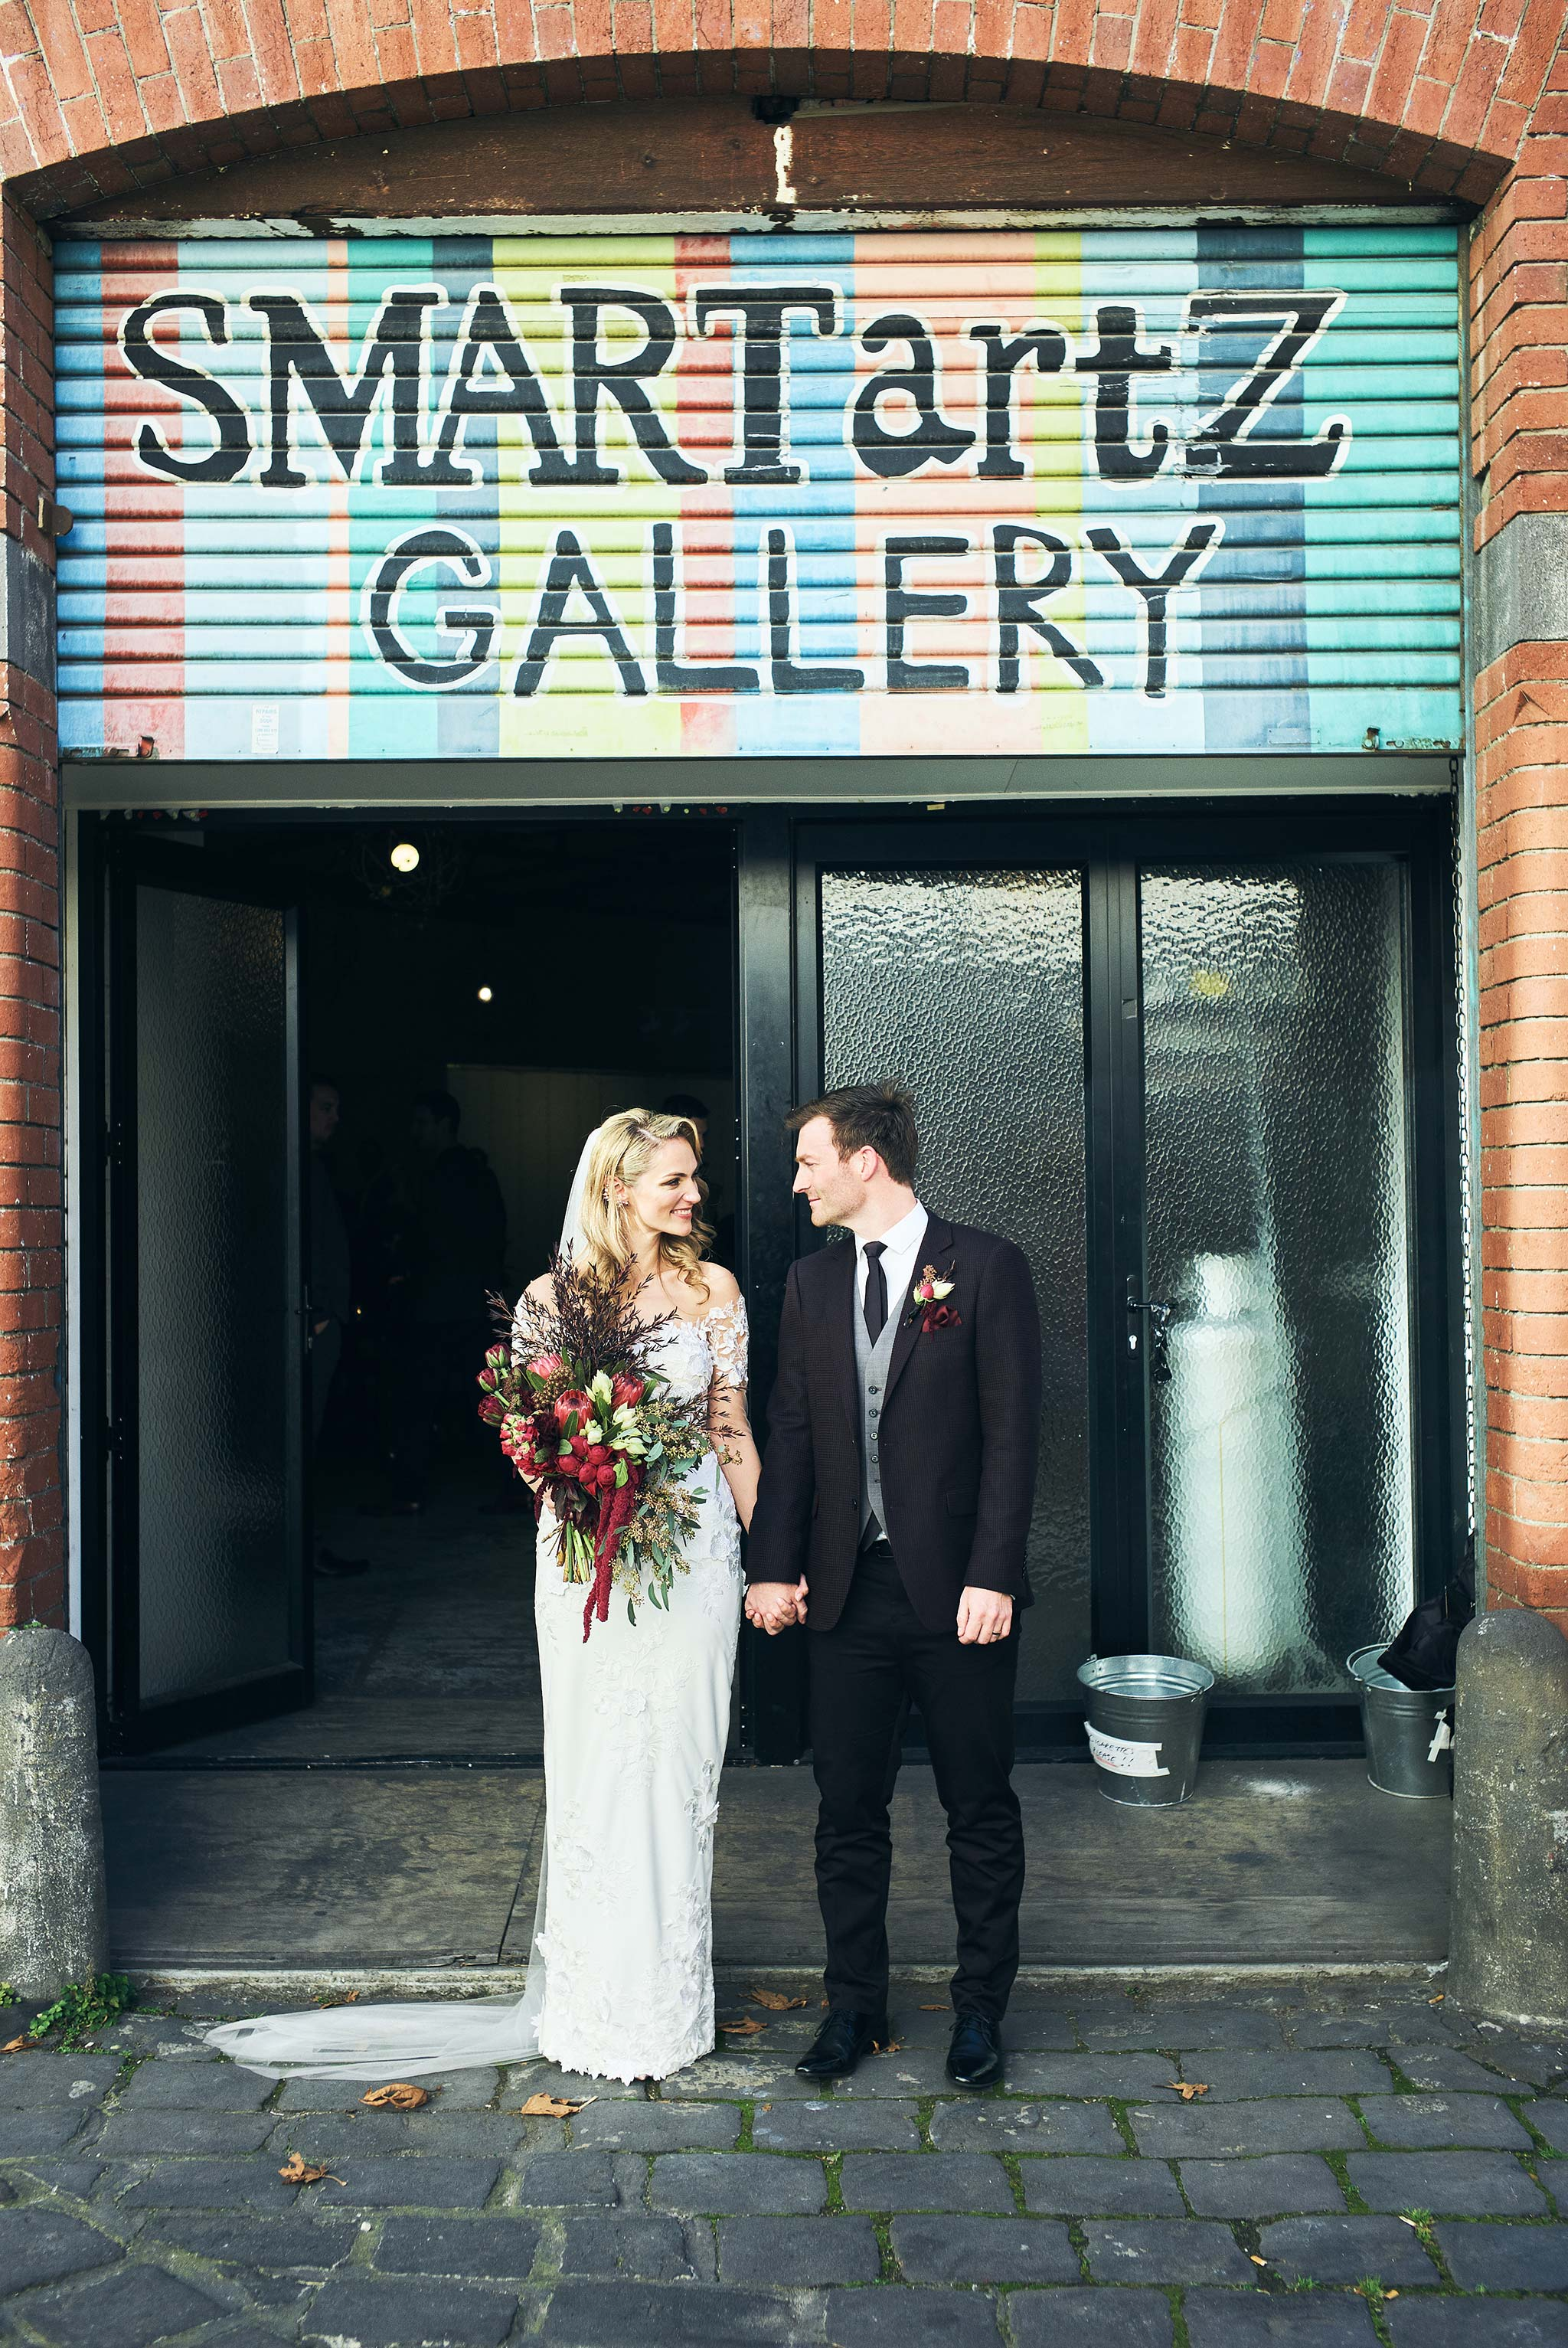 Melbourne-Wedding-Photographer-smartartz-gallery-ceremony-exit